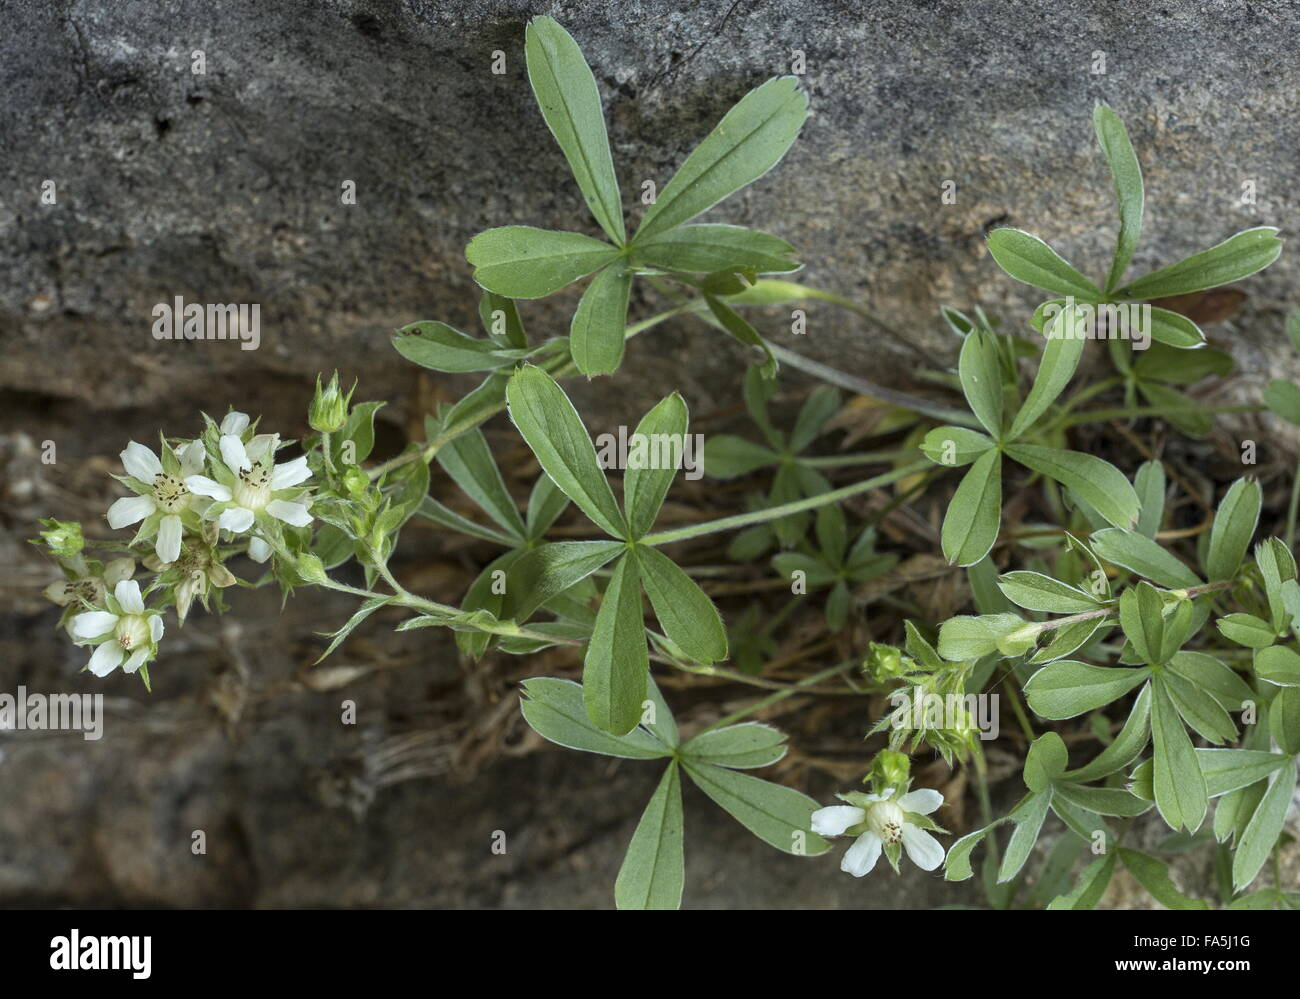 Lax cinquefoil, Potentilla caulescens in flower on dolomite cliff, Dolomites. - Stock Image